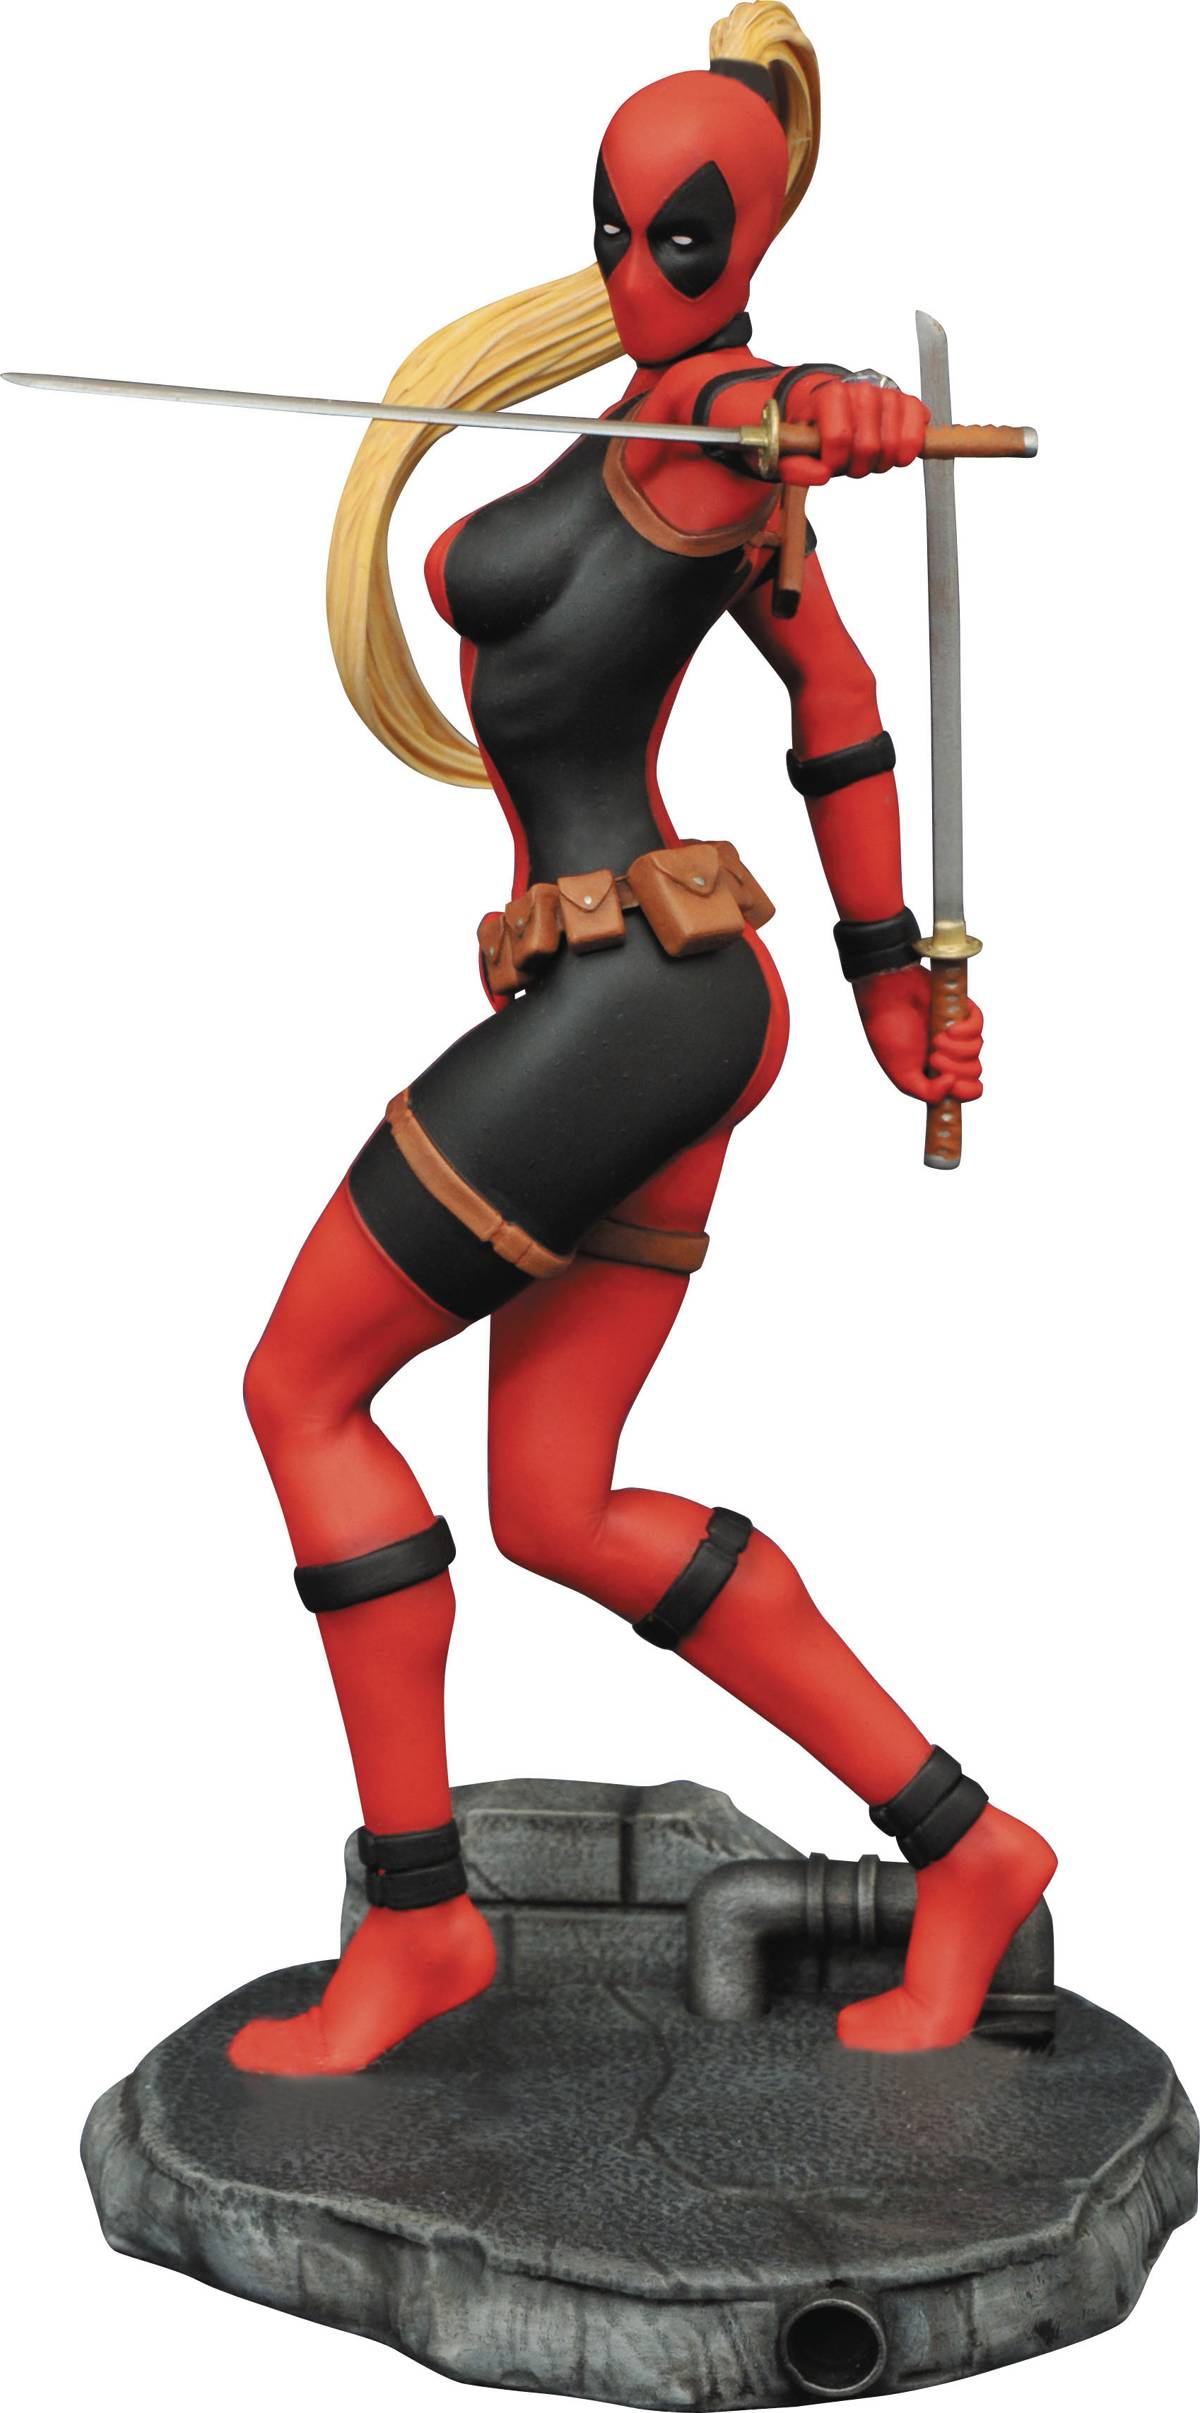 https://0901.nccdn.net/4_2/000/000/01e/20c/MARVEL-GALLERY-LADY-DEADPOOL-PVC-FIG.jpg